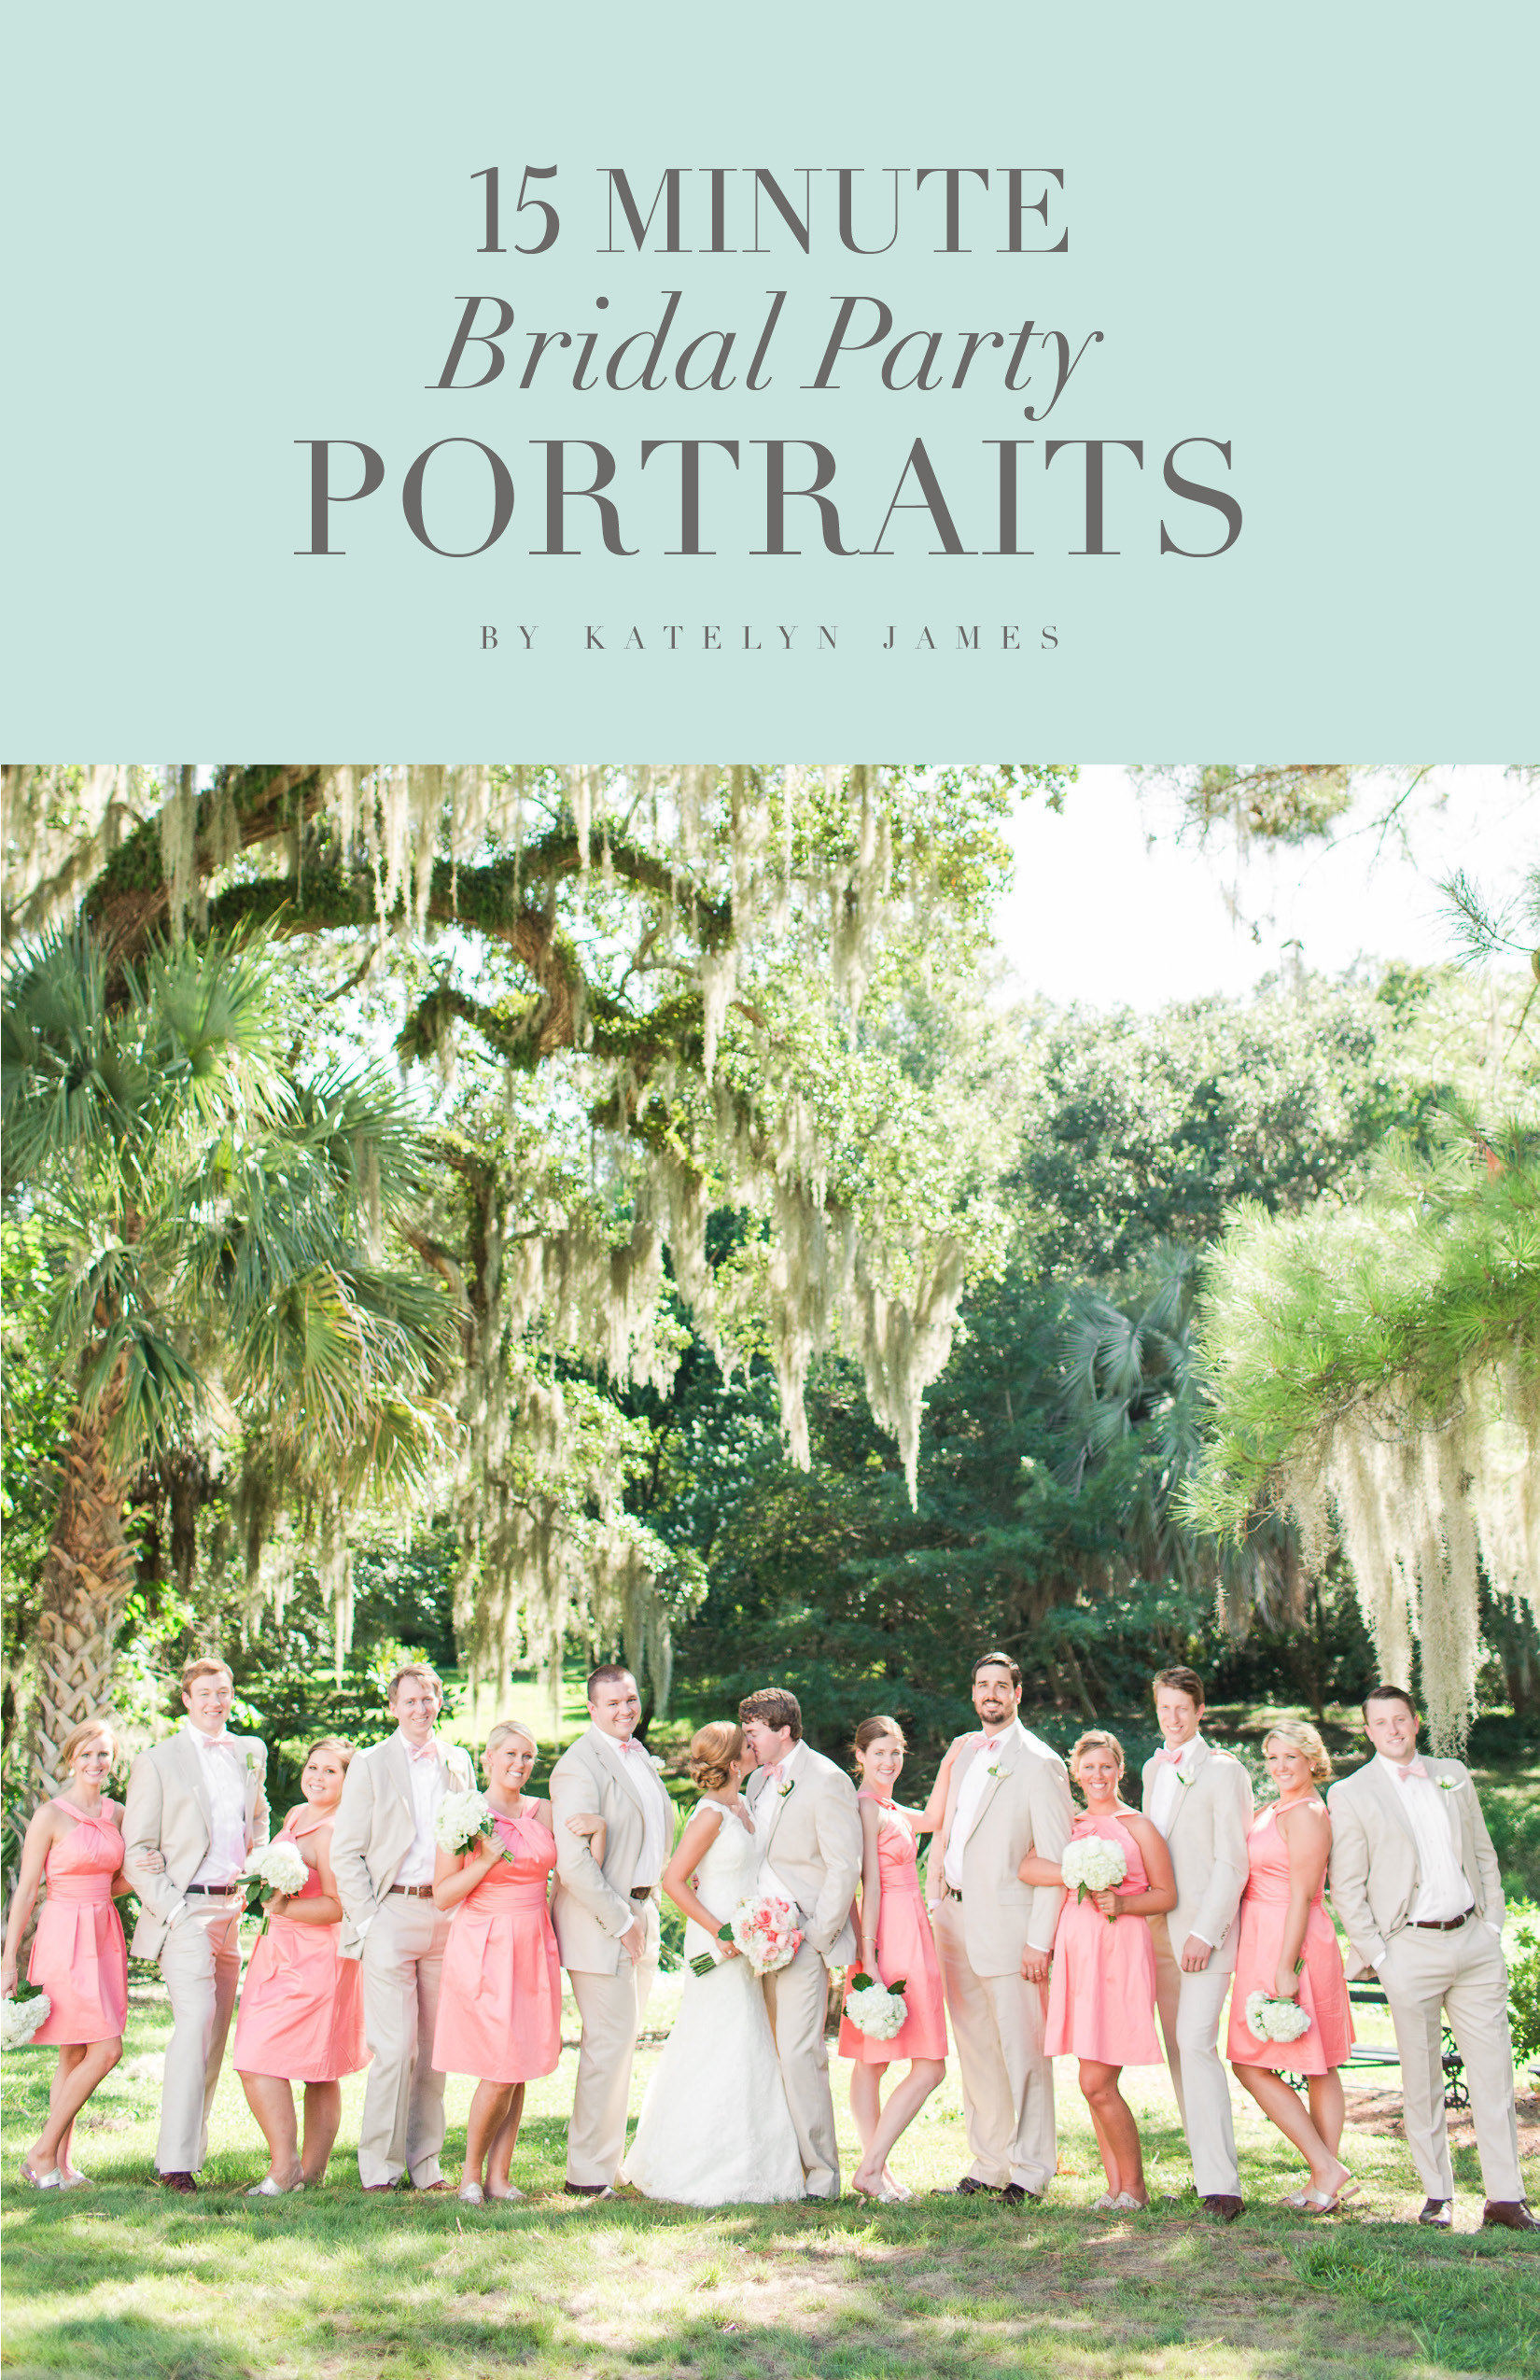 15 Minute Bridal Party PortraitsCOVER